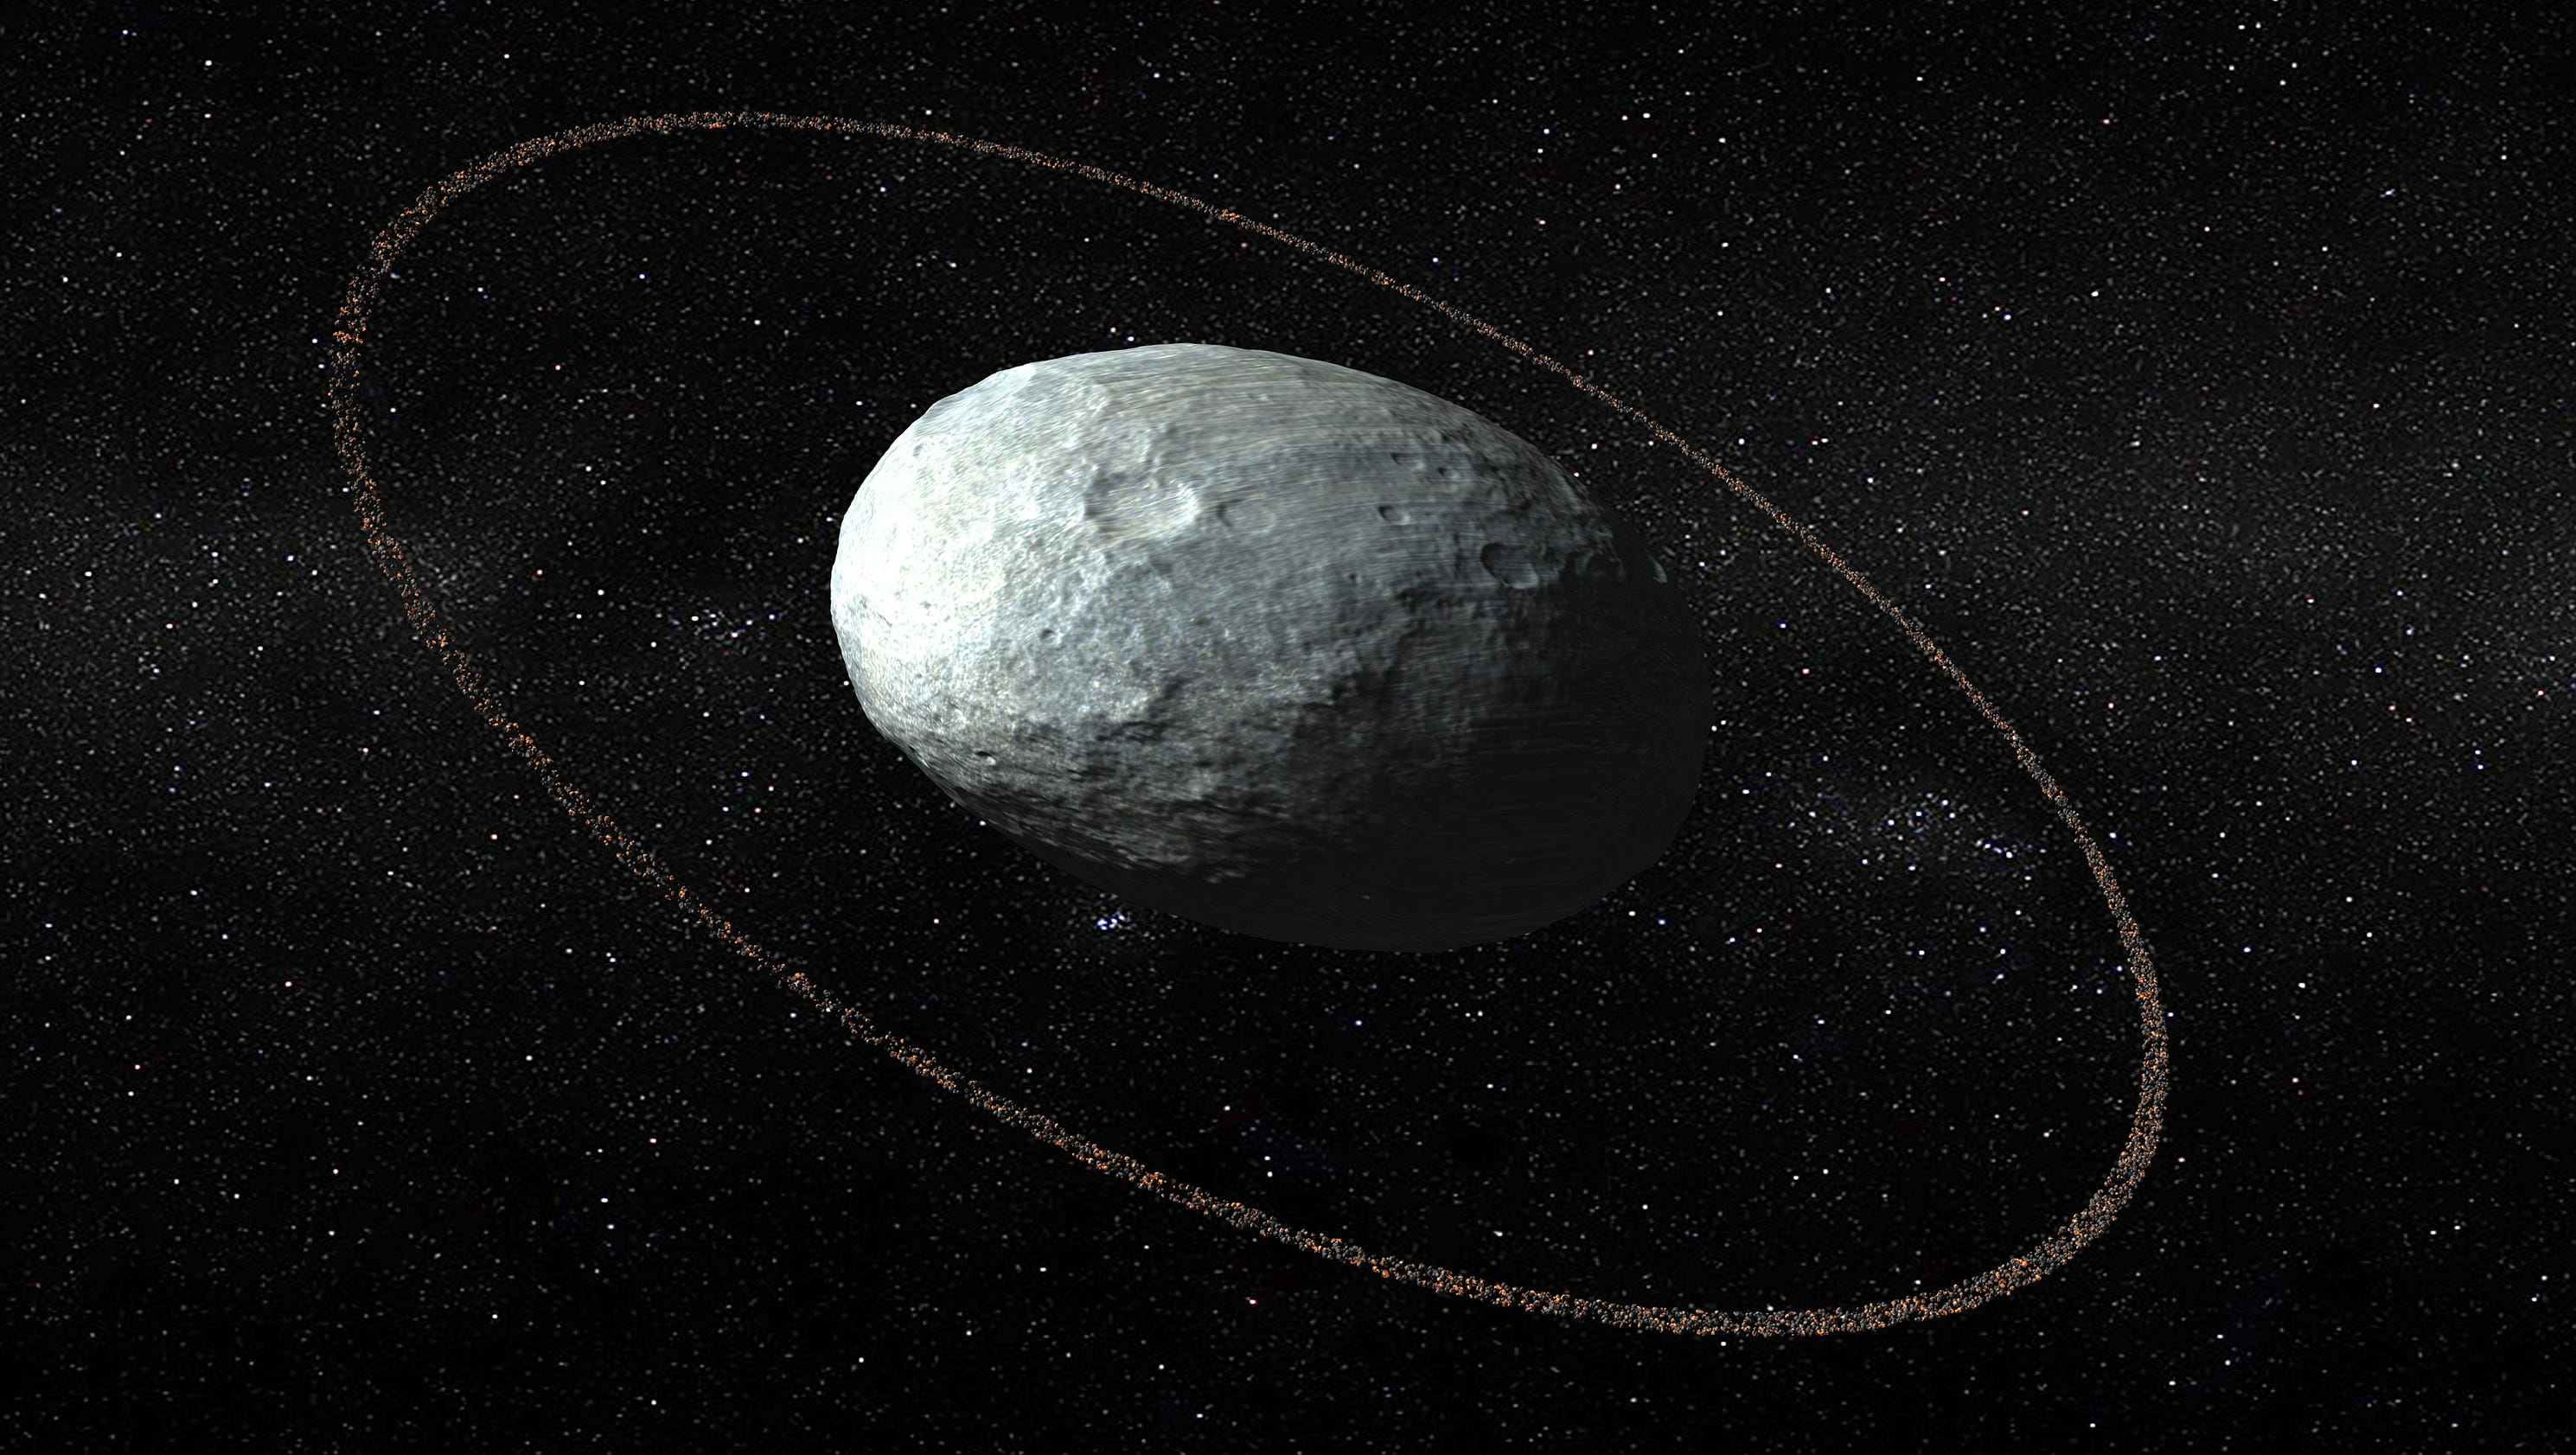 dwarf planets haumea - photo #19